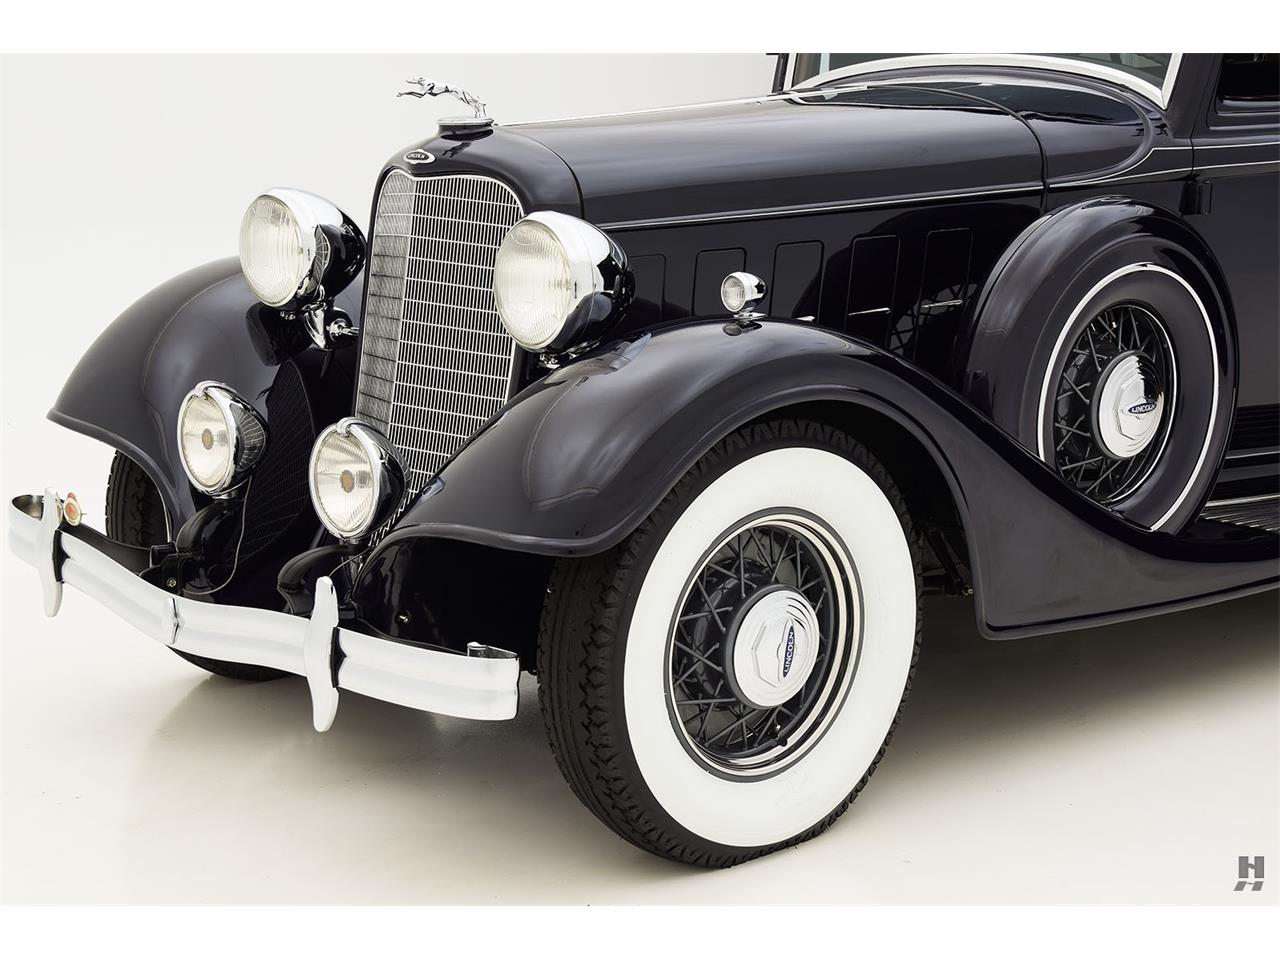 Large Picture of 1934 Lincoln Antique located in Missouri - $129,500.00 - LBT2